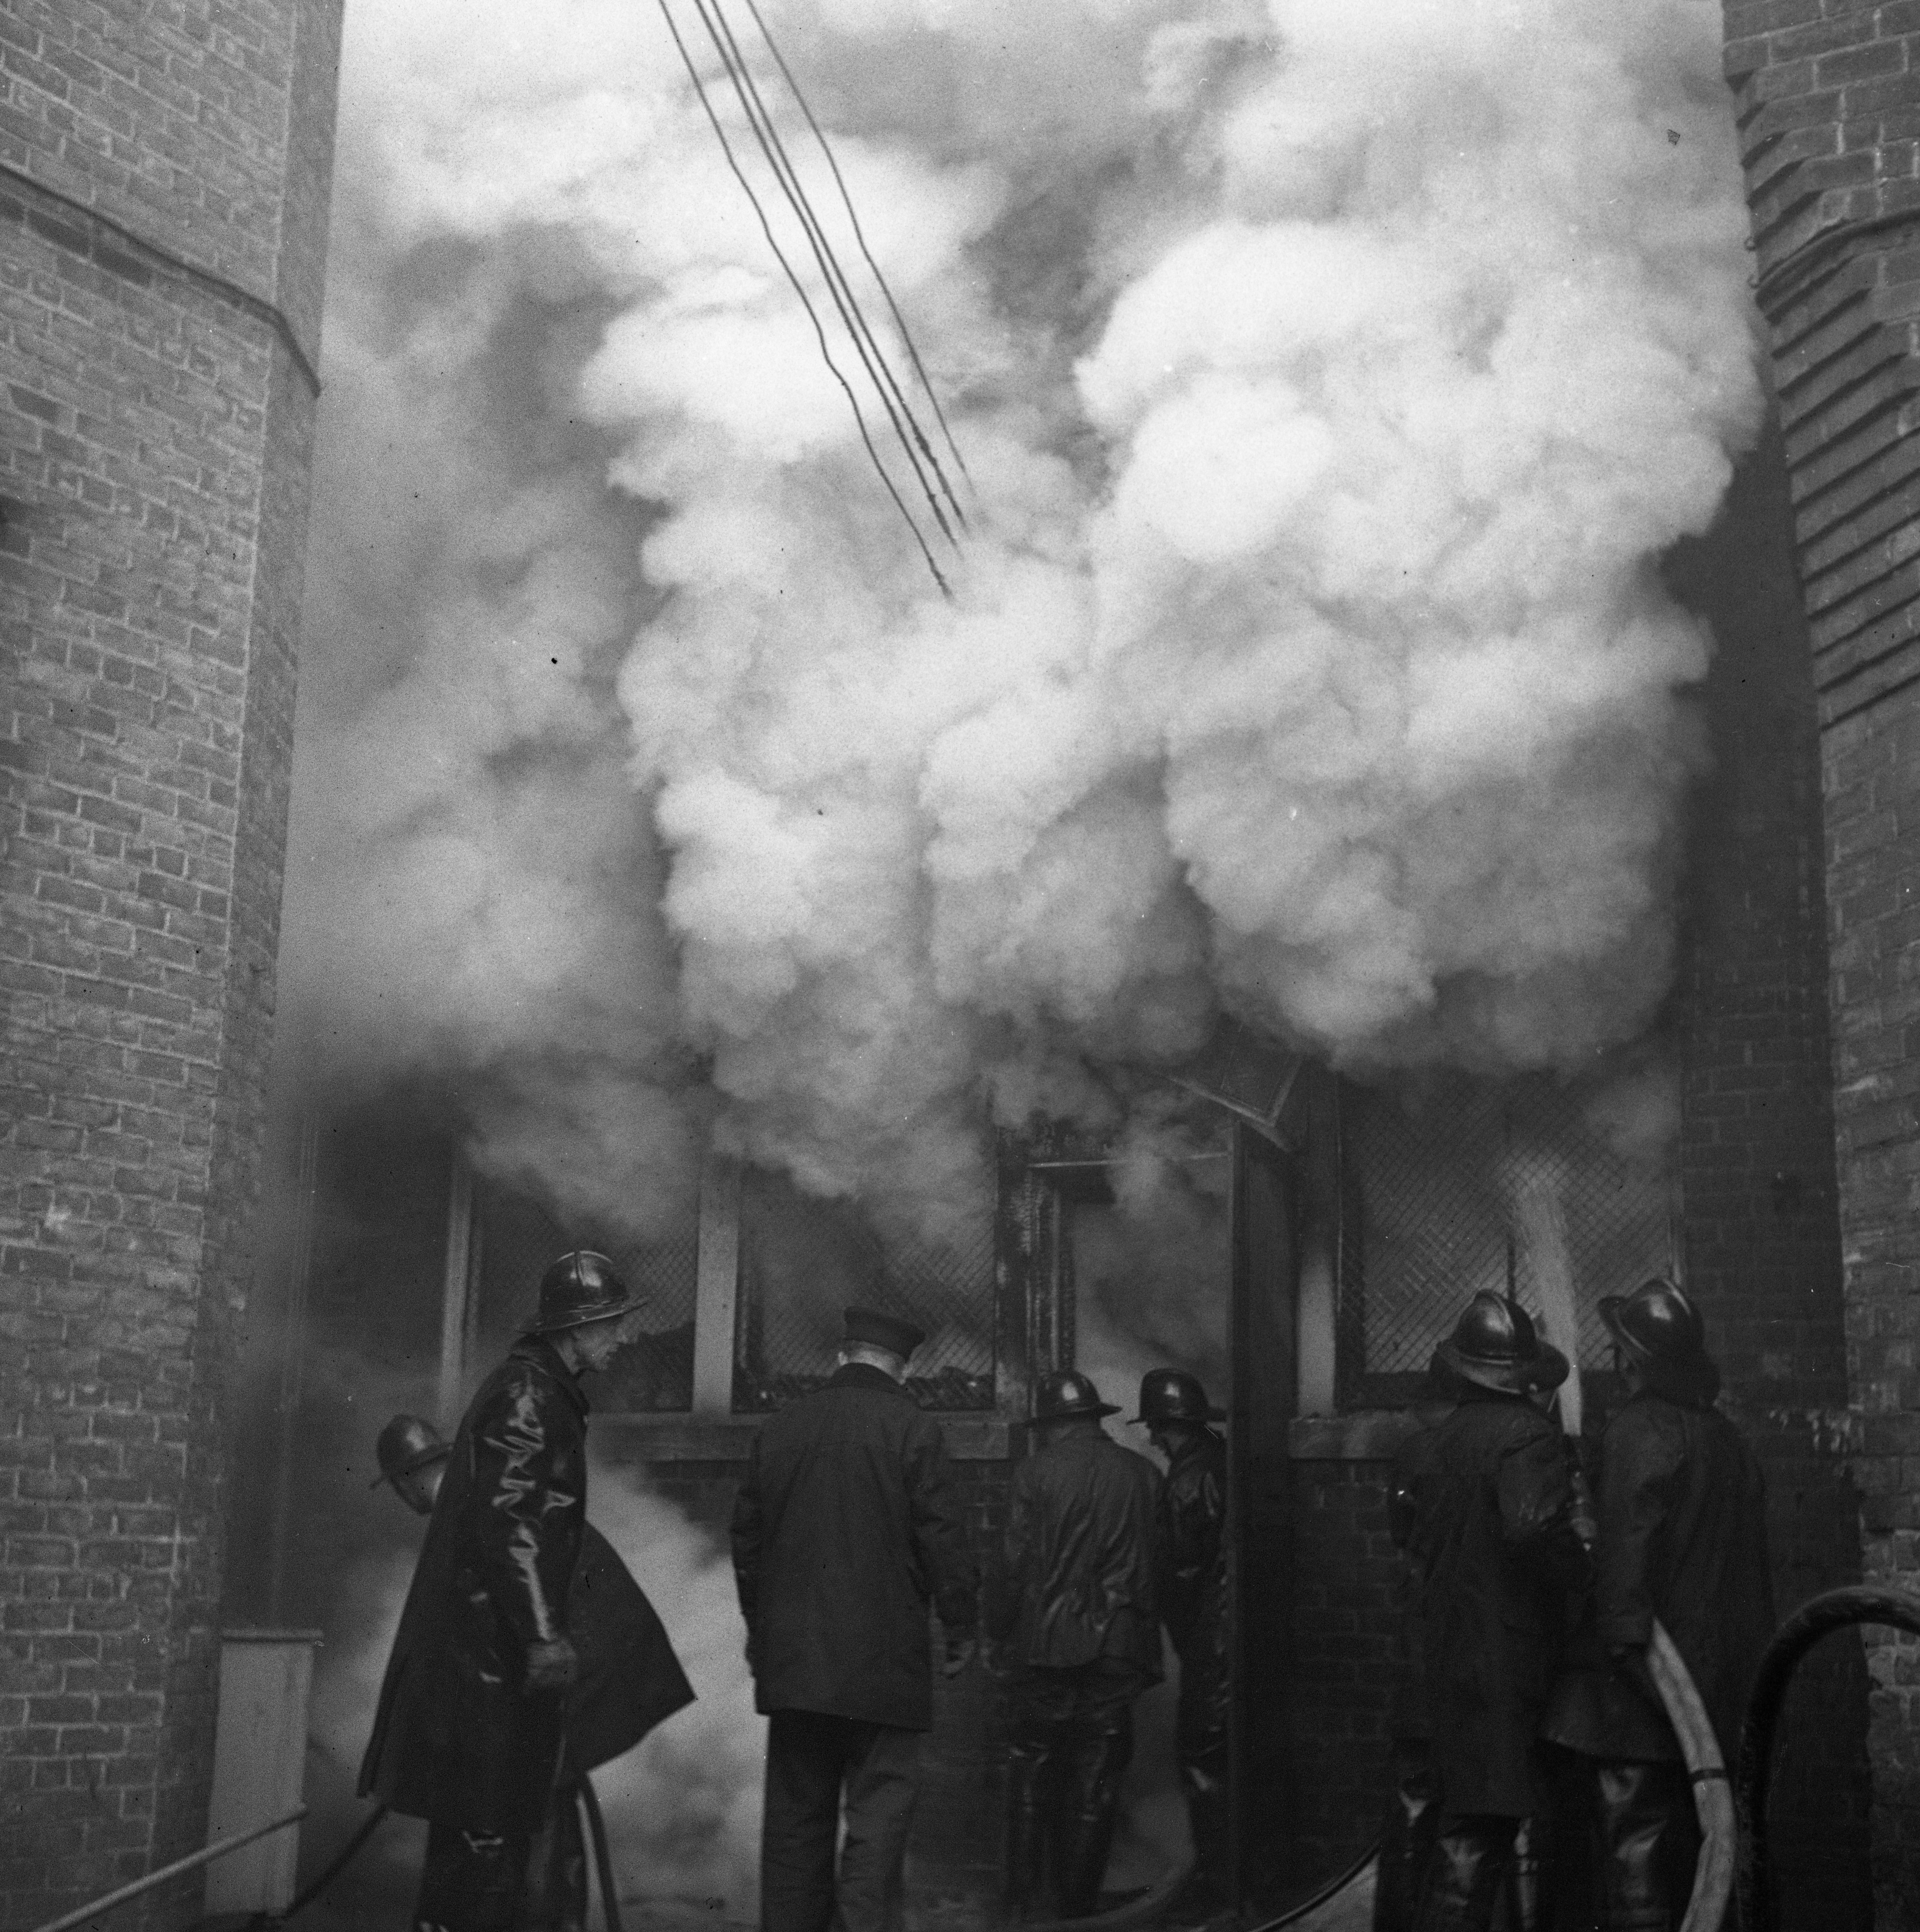 Smoke Engulfs S. State St. During Wild & Co. Fire, December 1947 image